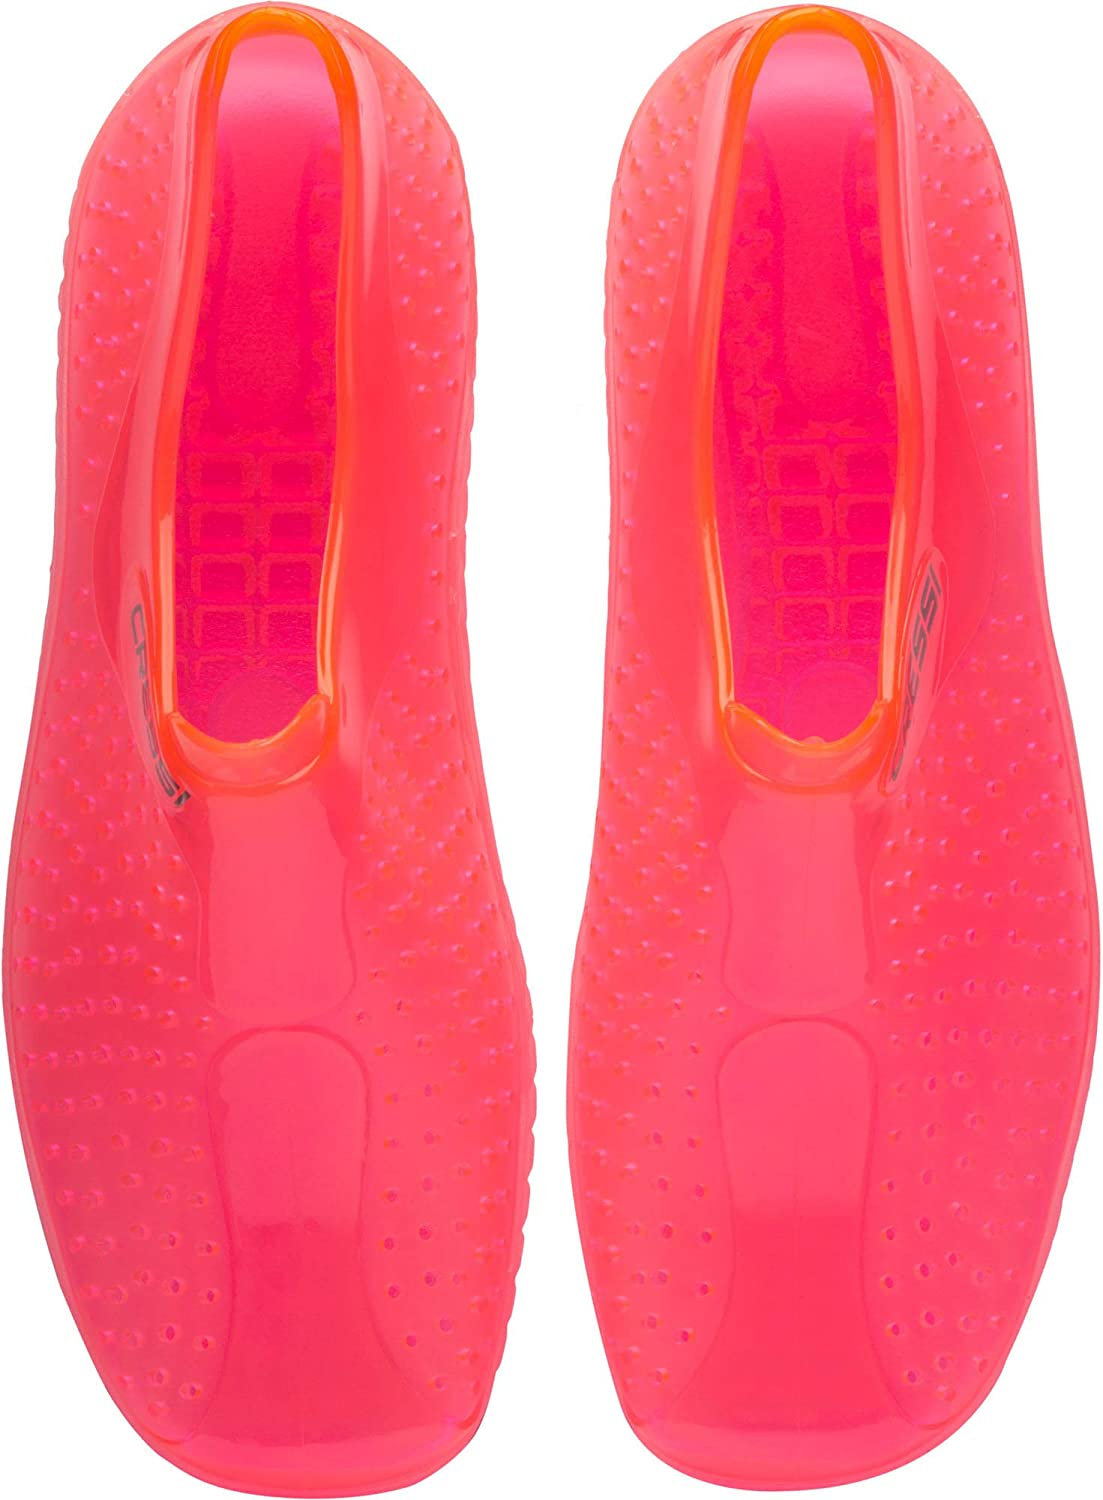 Fuchsia Fluo 7.5 US Cressi Womens Water Shoes